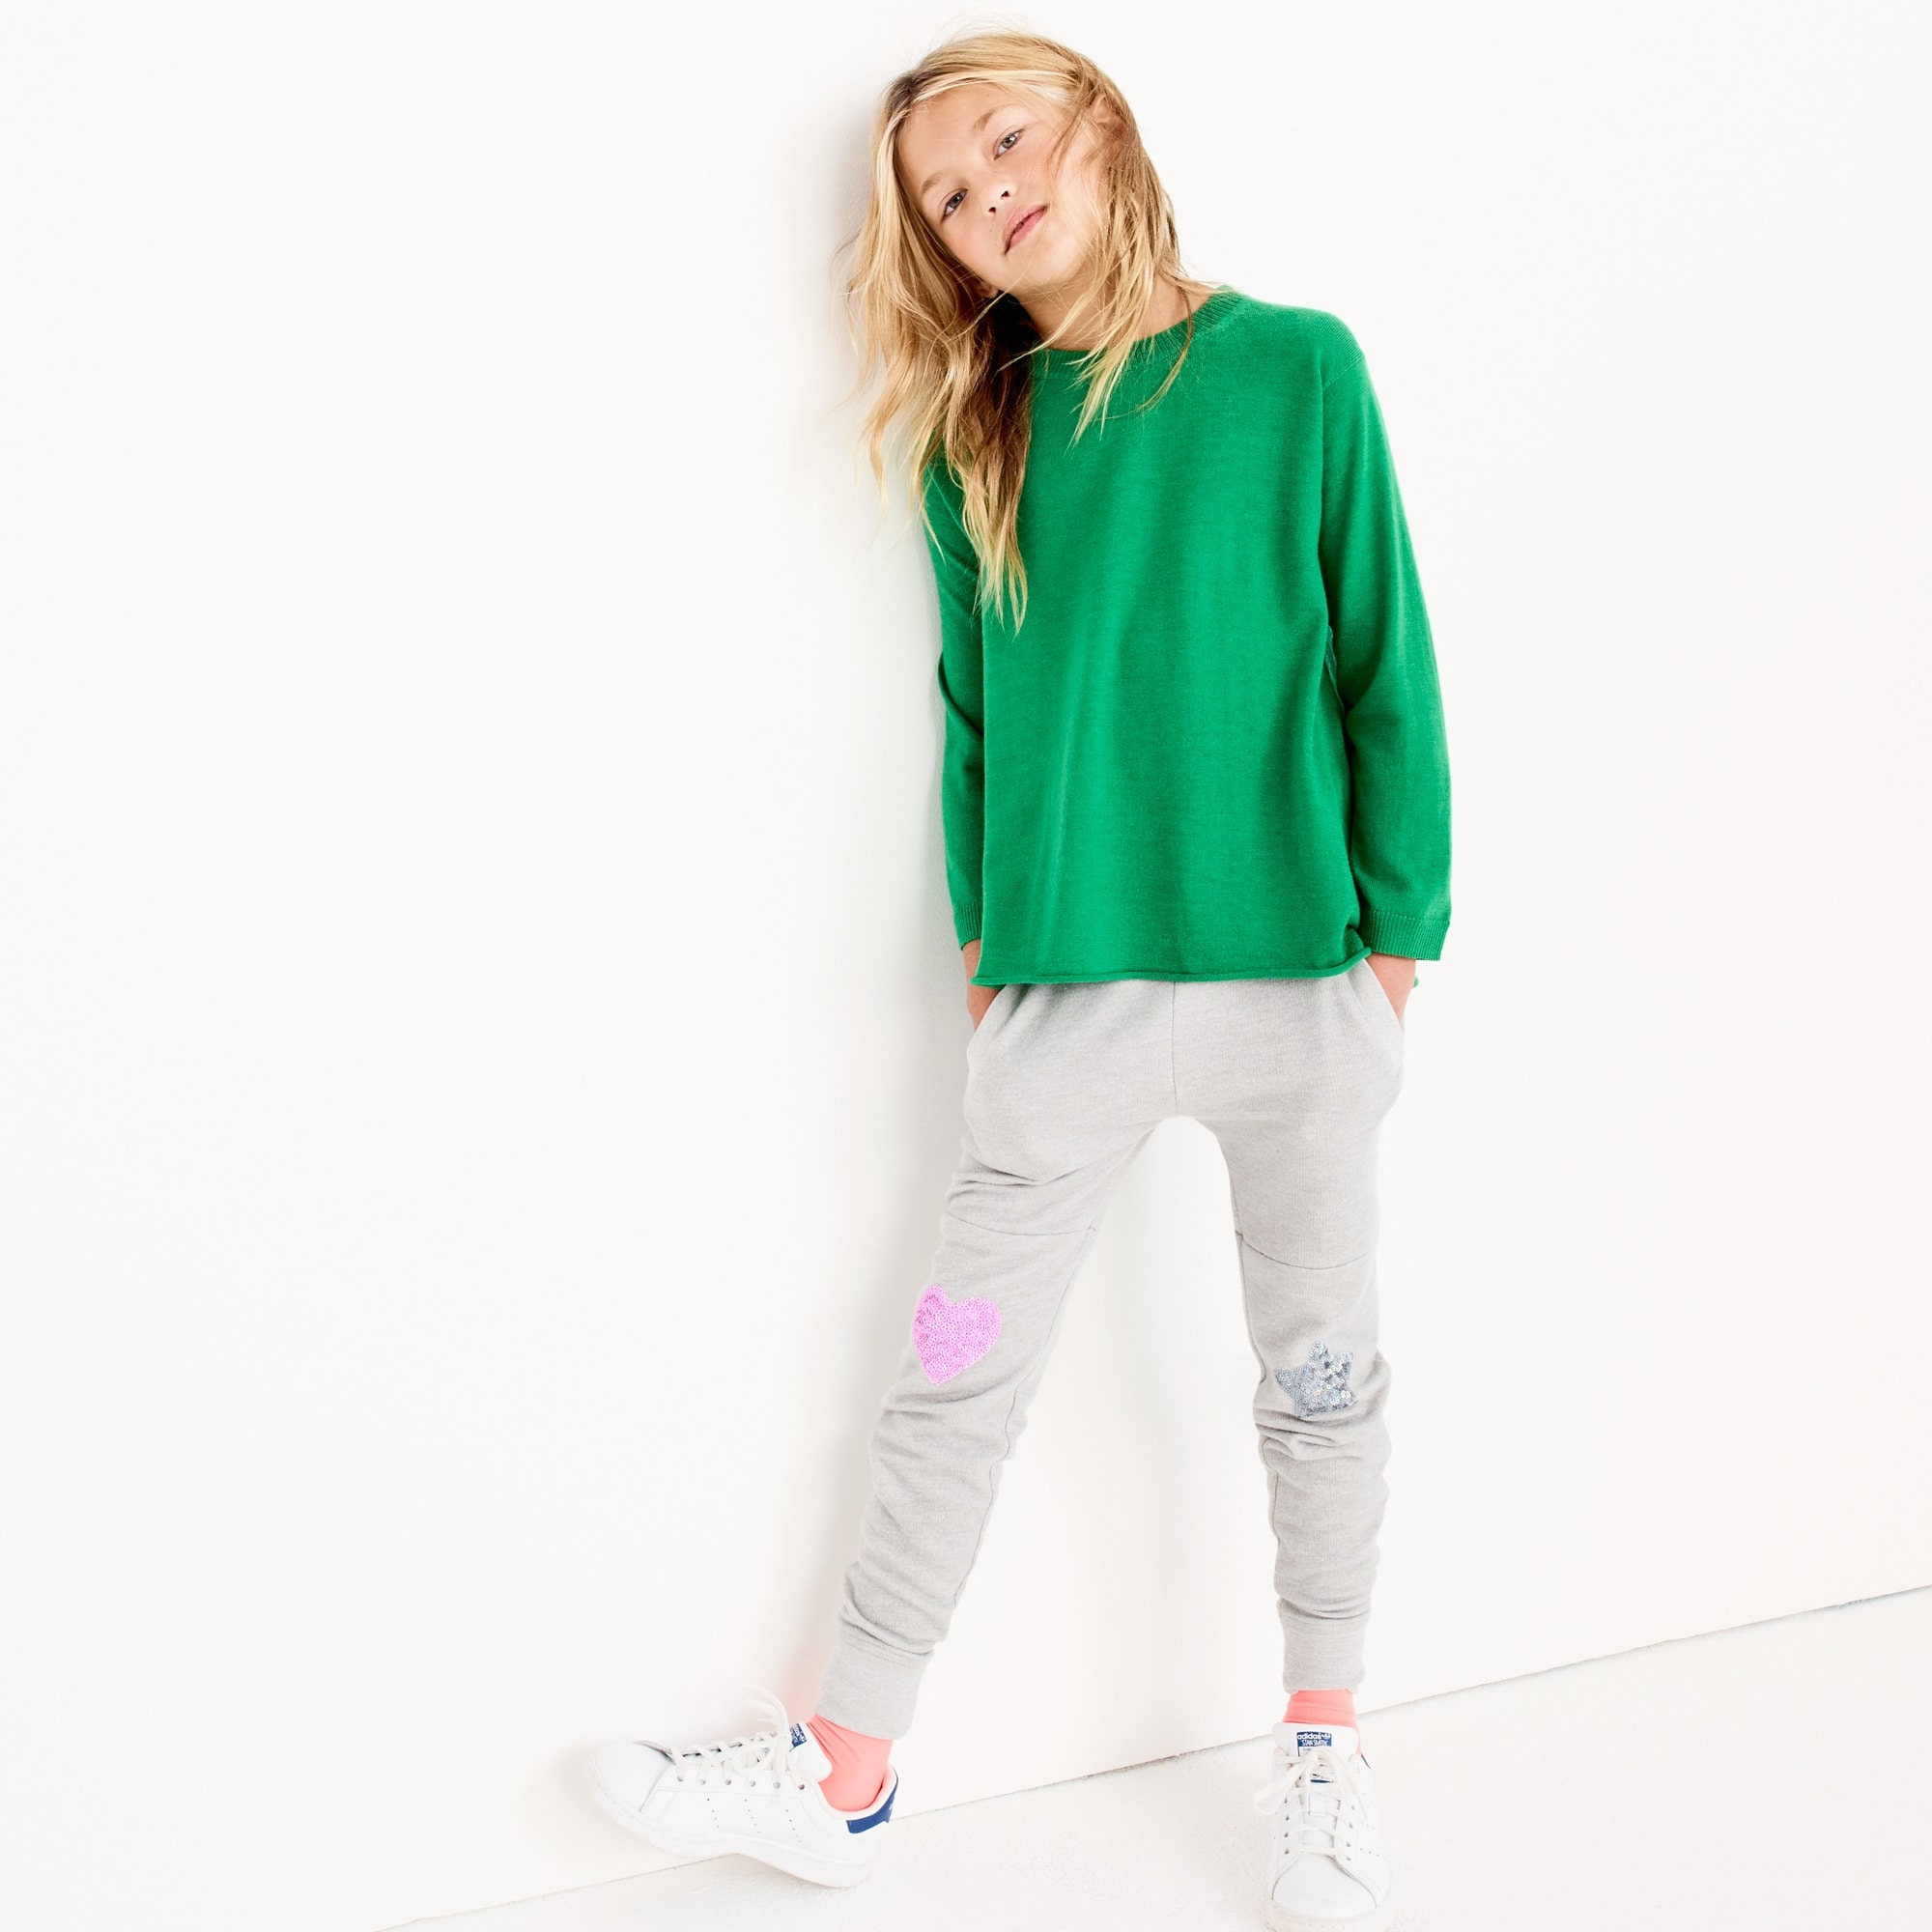 Image 1 for Girls' sequin sweatpant